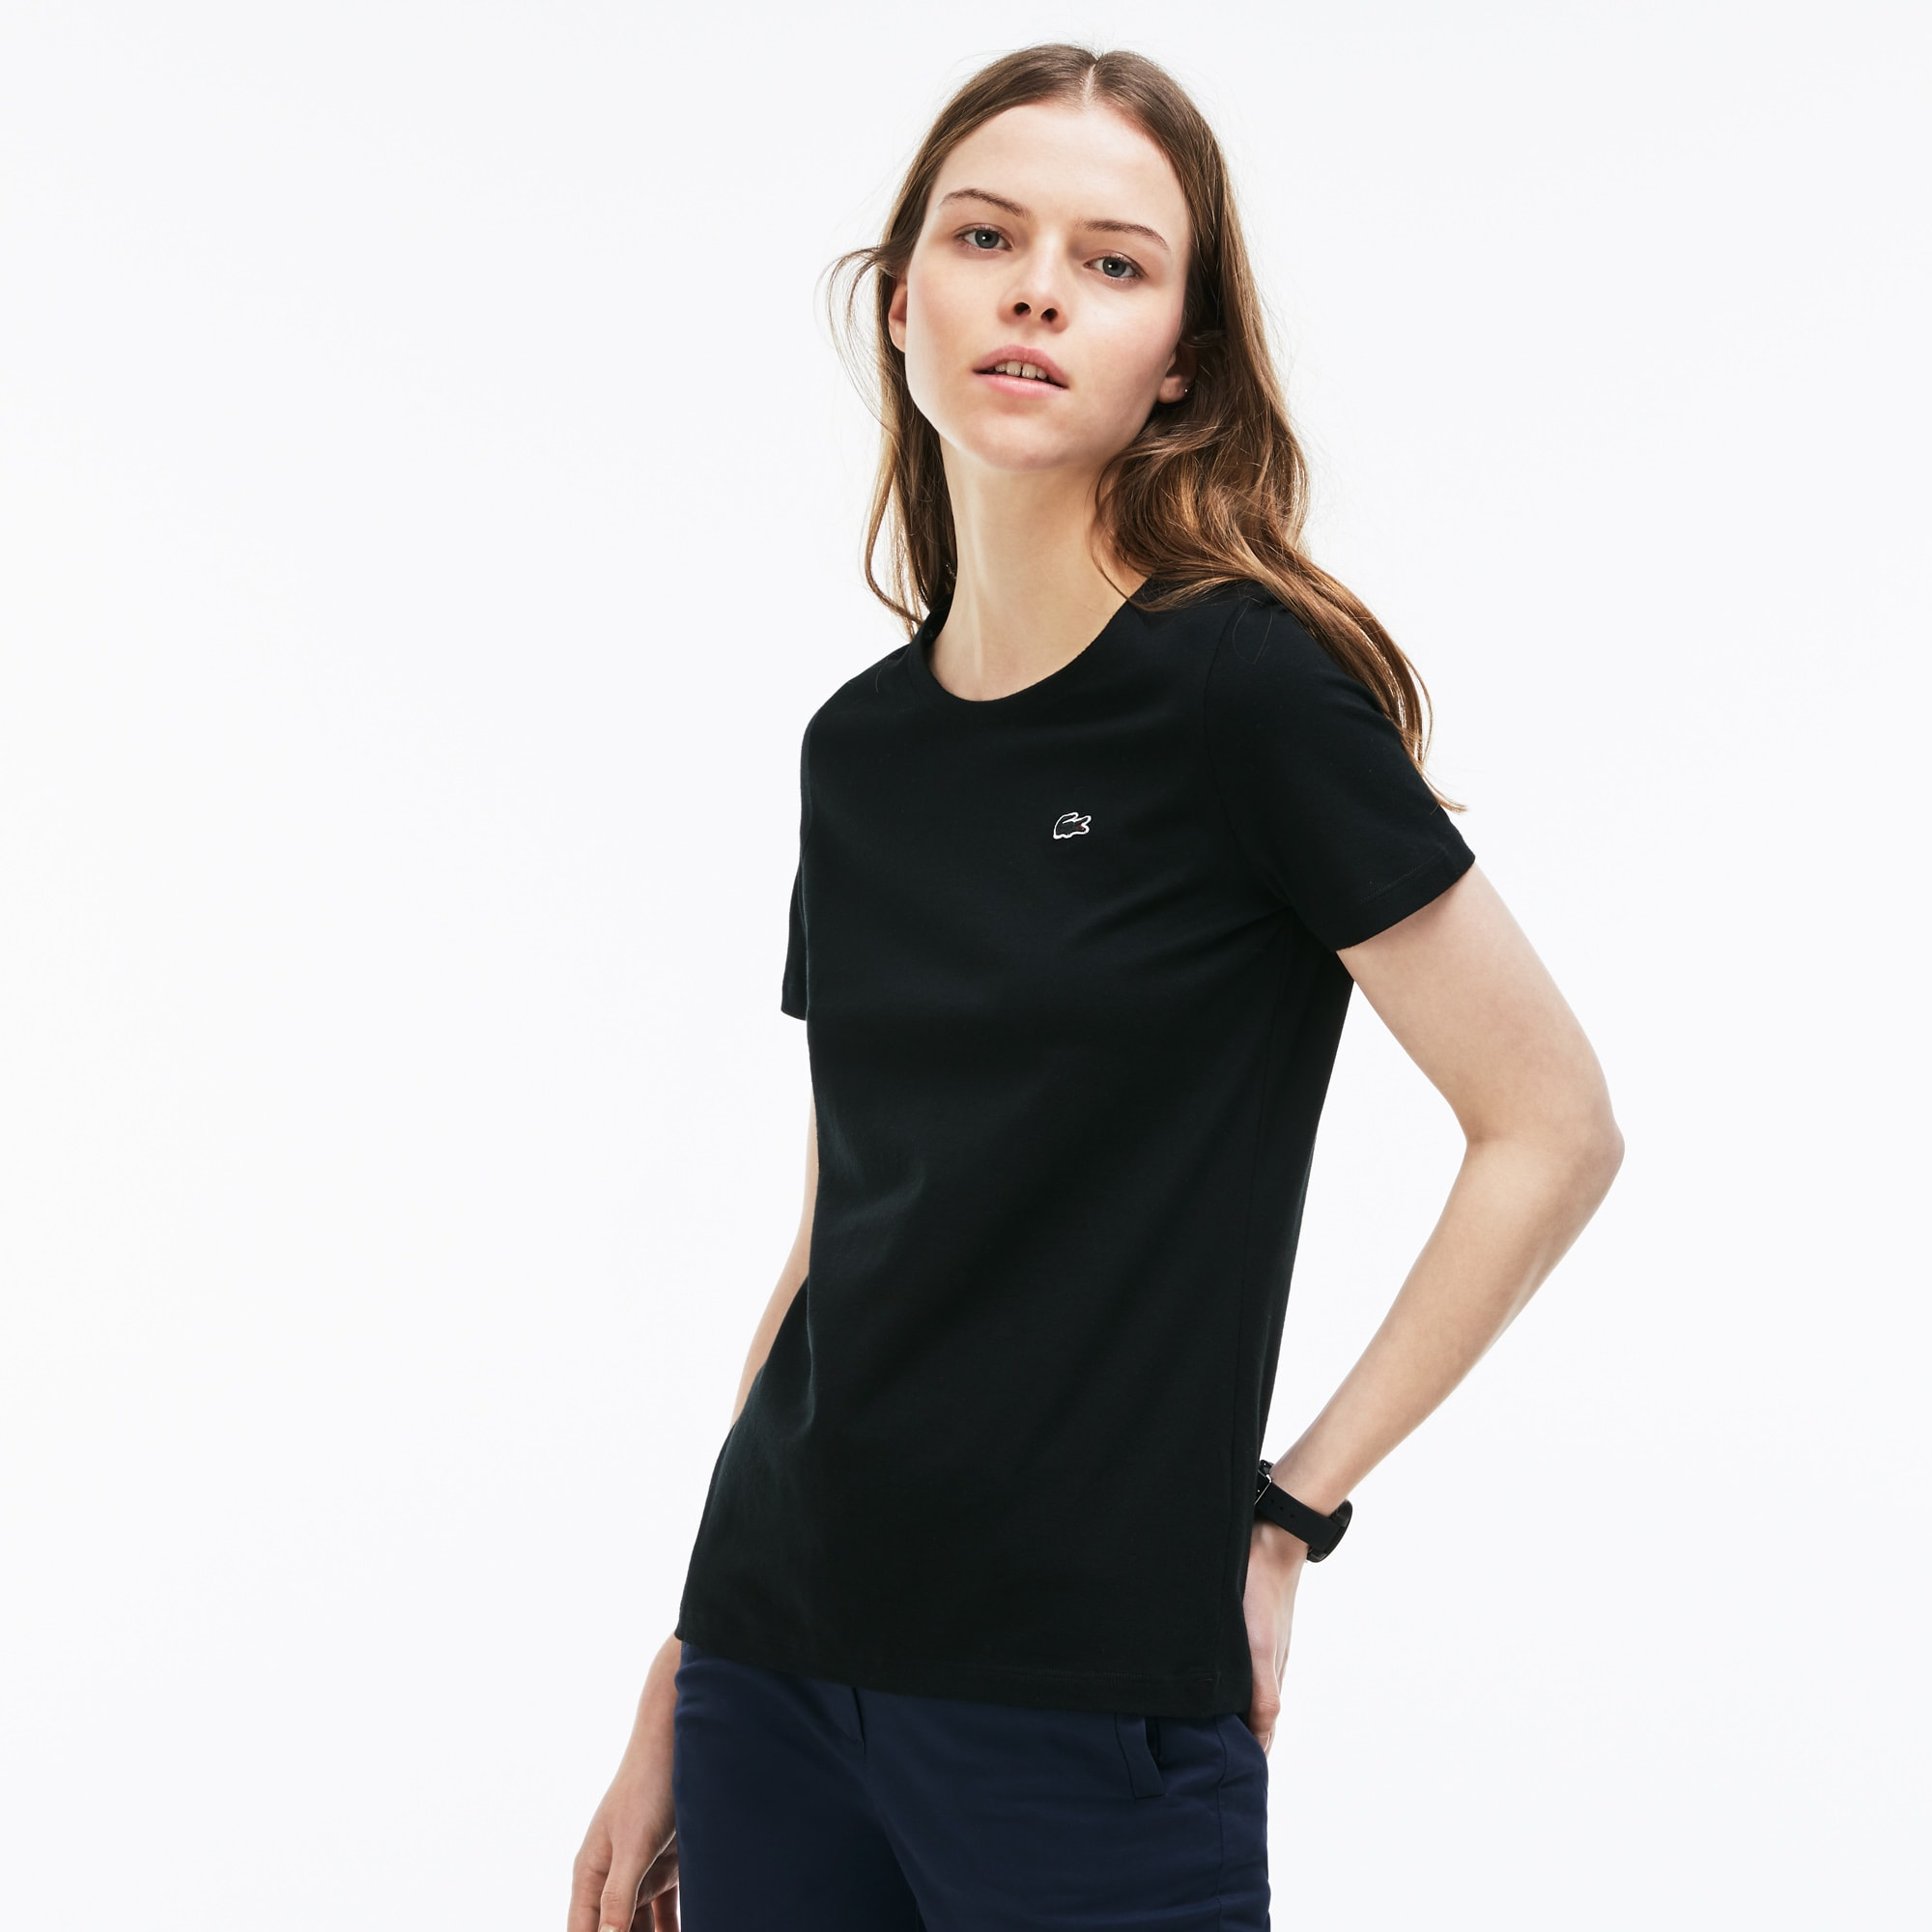 Women's Crew Neck Flowing T-Shirt